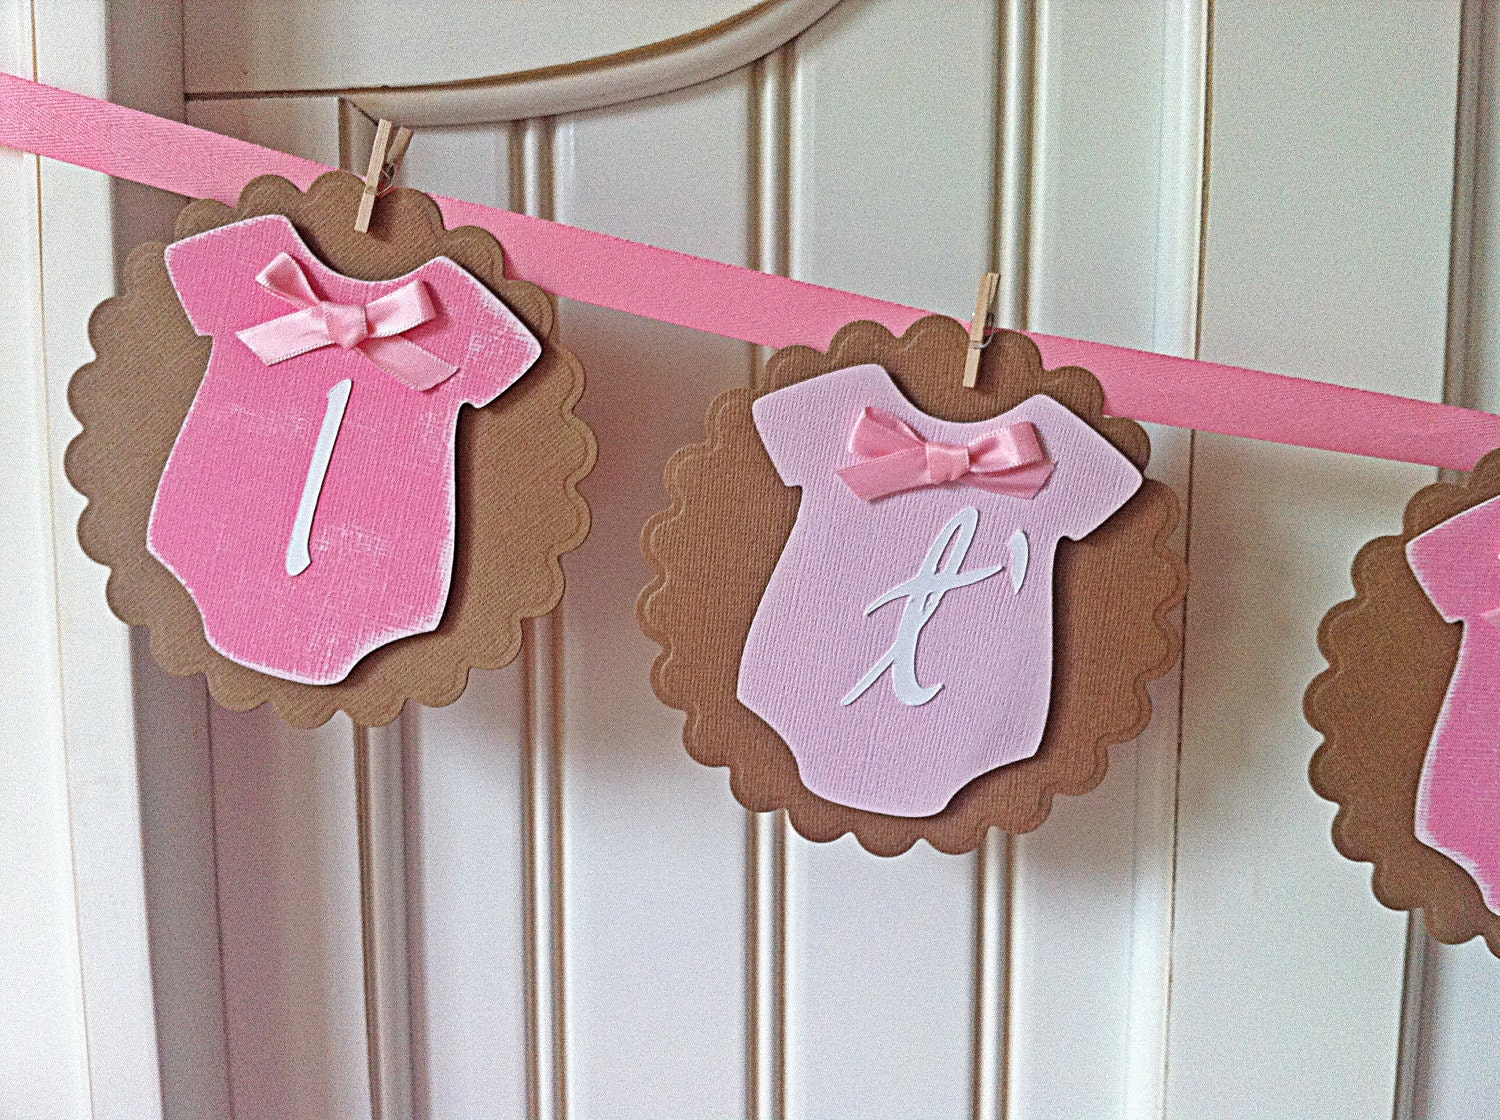 it 39 s a girl vintage style onesies baby shower banner free. Black Bedroom Furniture Sets. Home Design Ideas